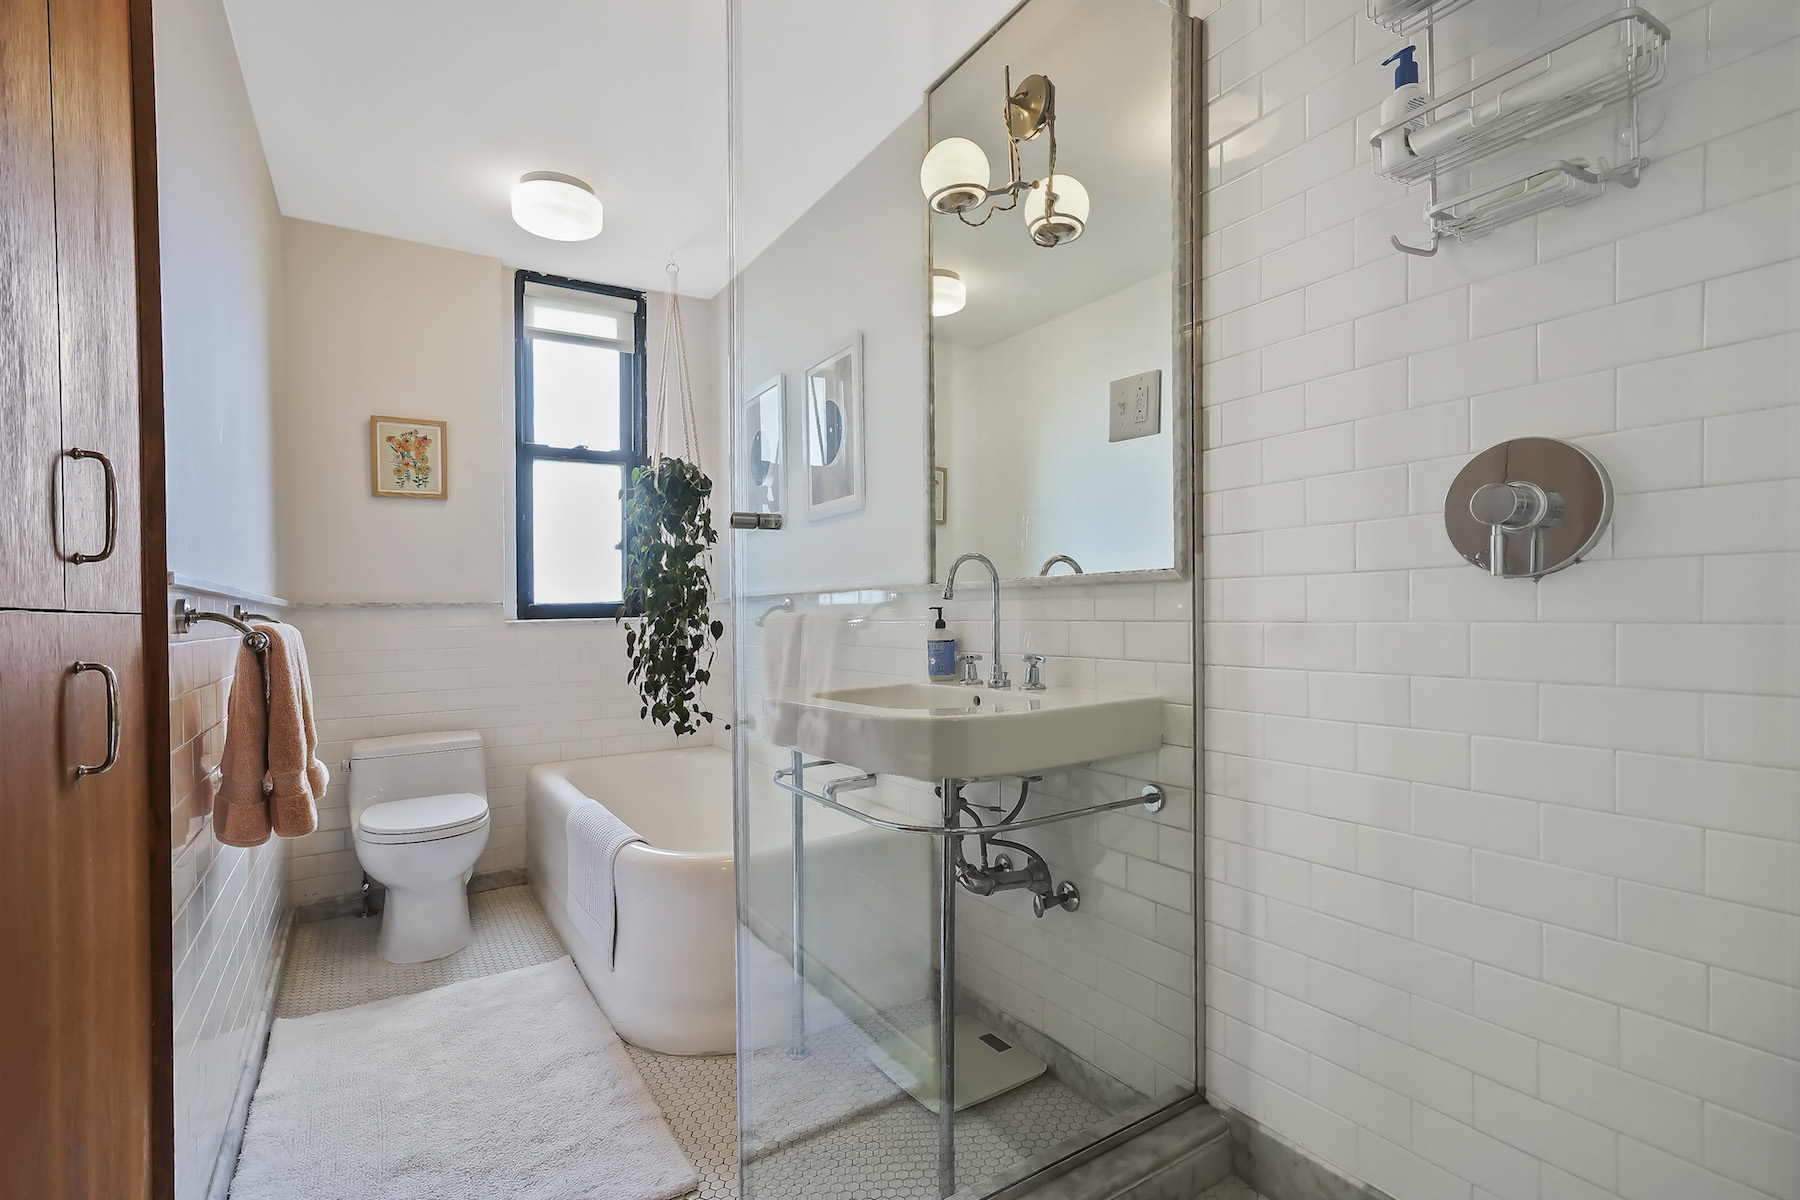 Additional photo for property listing at 135 Eastern Parkway Apt 8F 135 Eastern Parkway Apt 8F Brooklyn, New York 11238 United States